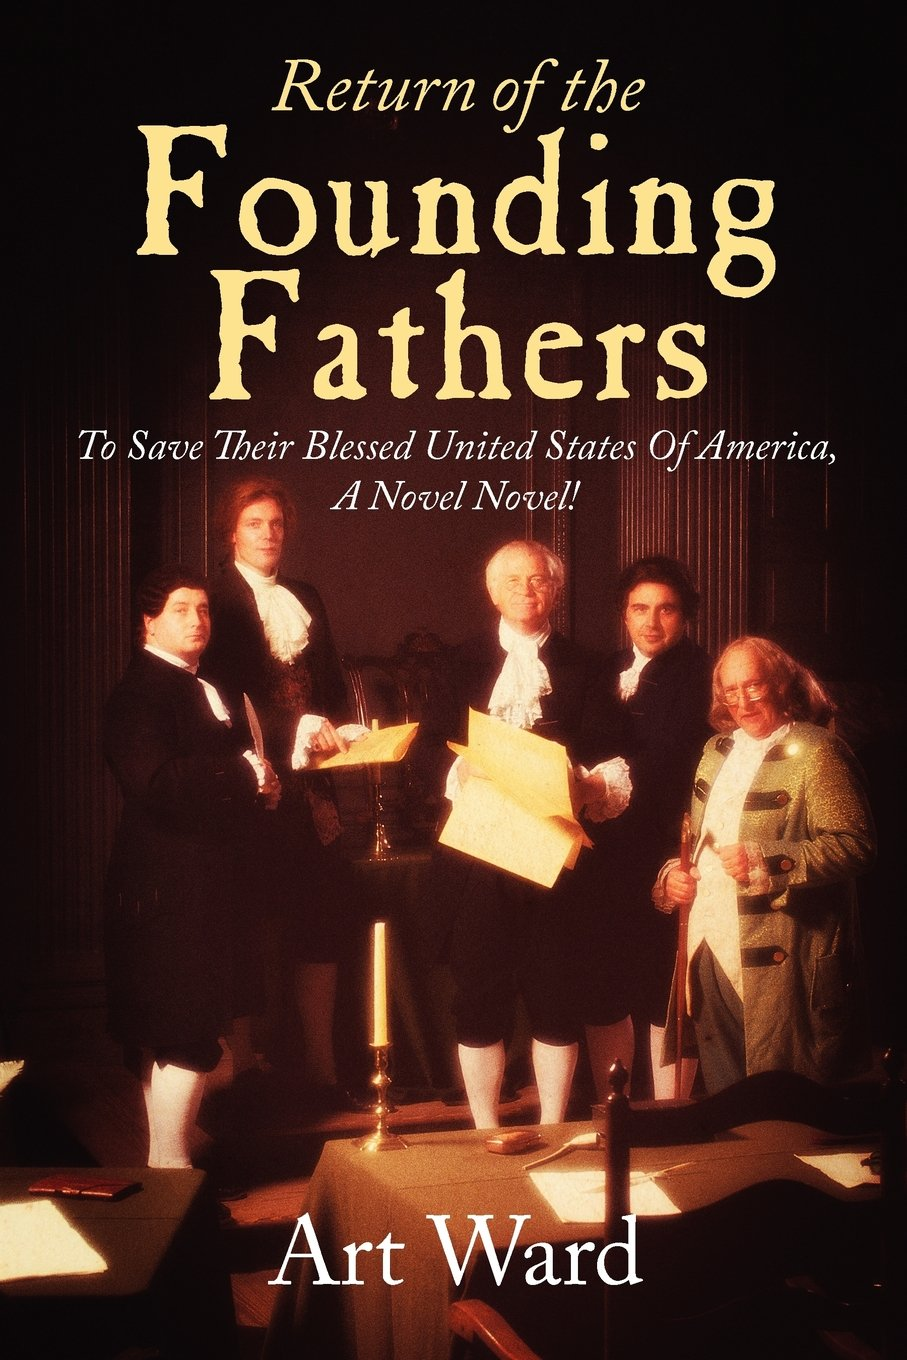 Read Online Return of the Founding Fathers: To Save Their Blessed United States of America, a Novel Novel! ePub fb2 book